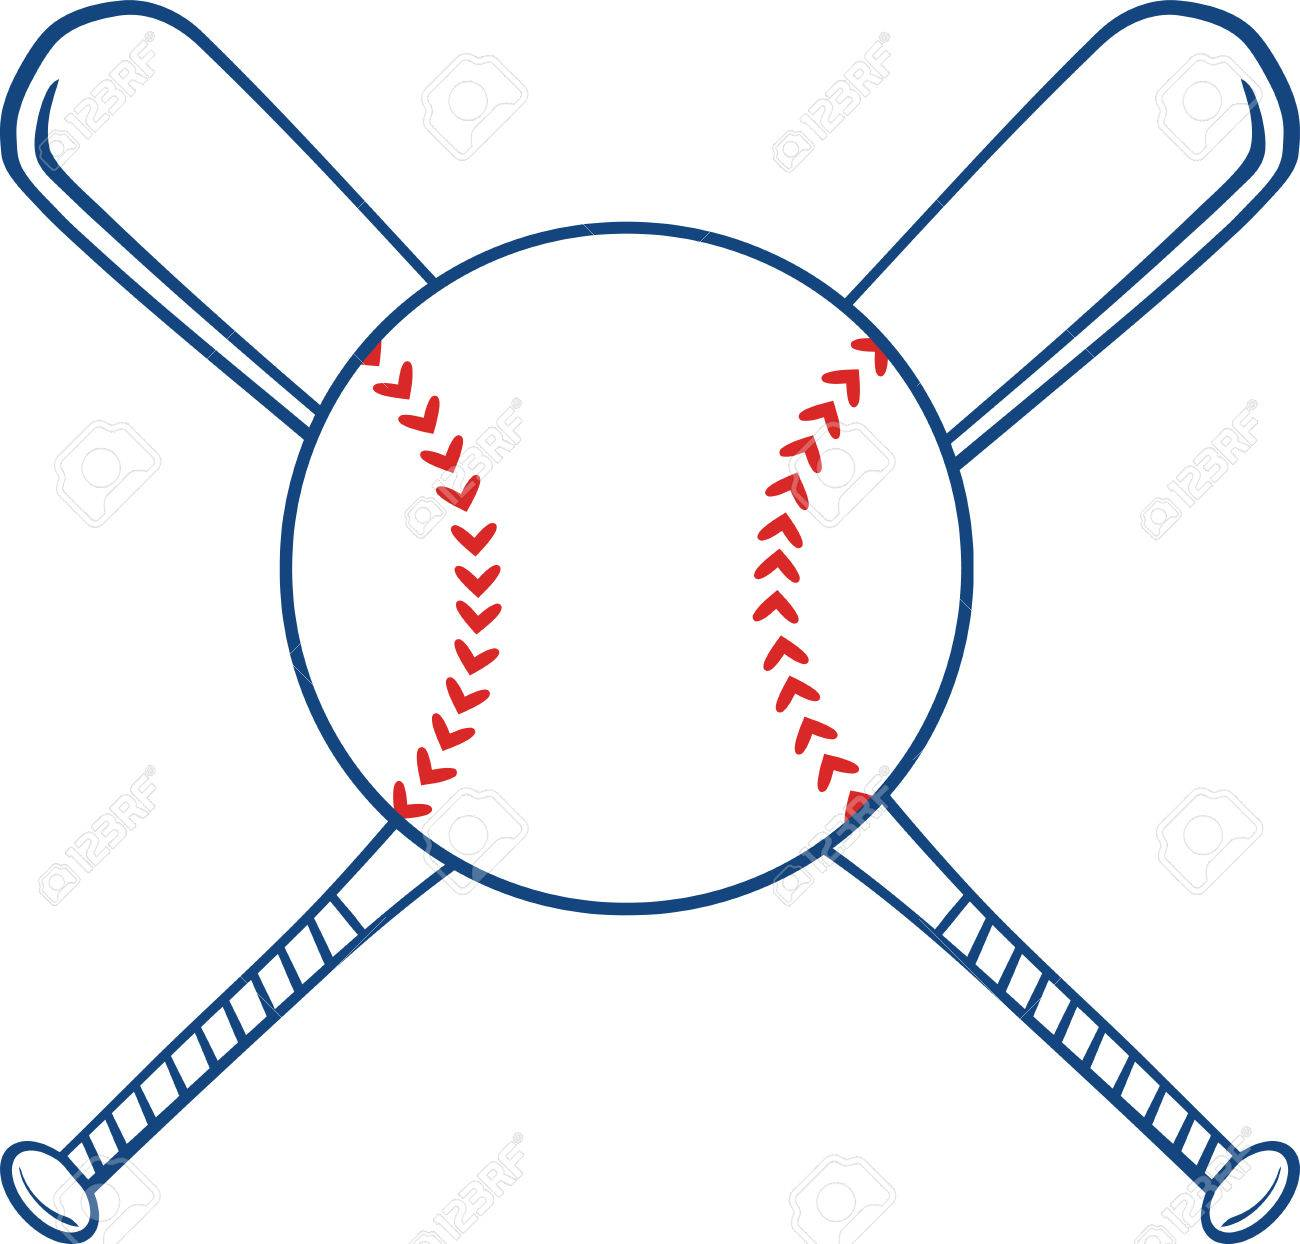 two crossed baseball bats and ball illustration isolated on rh 123rf com